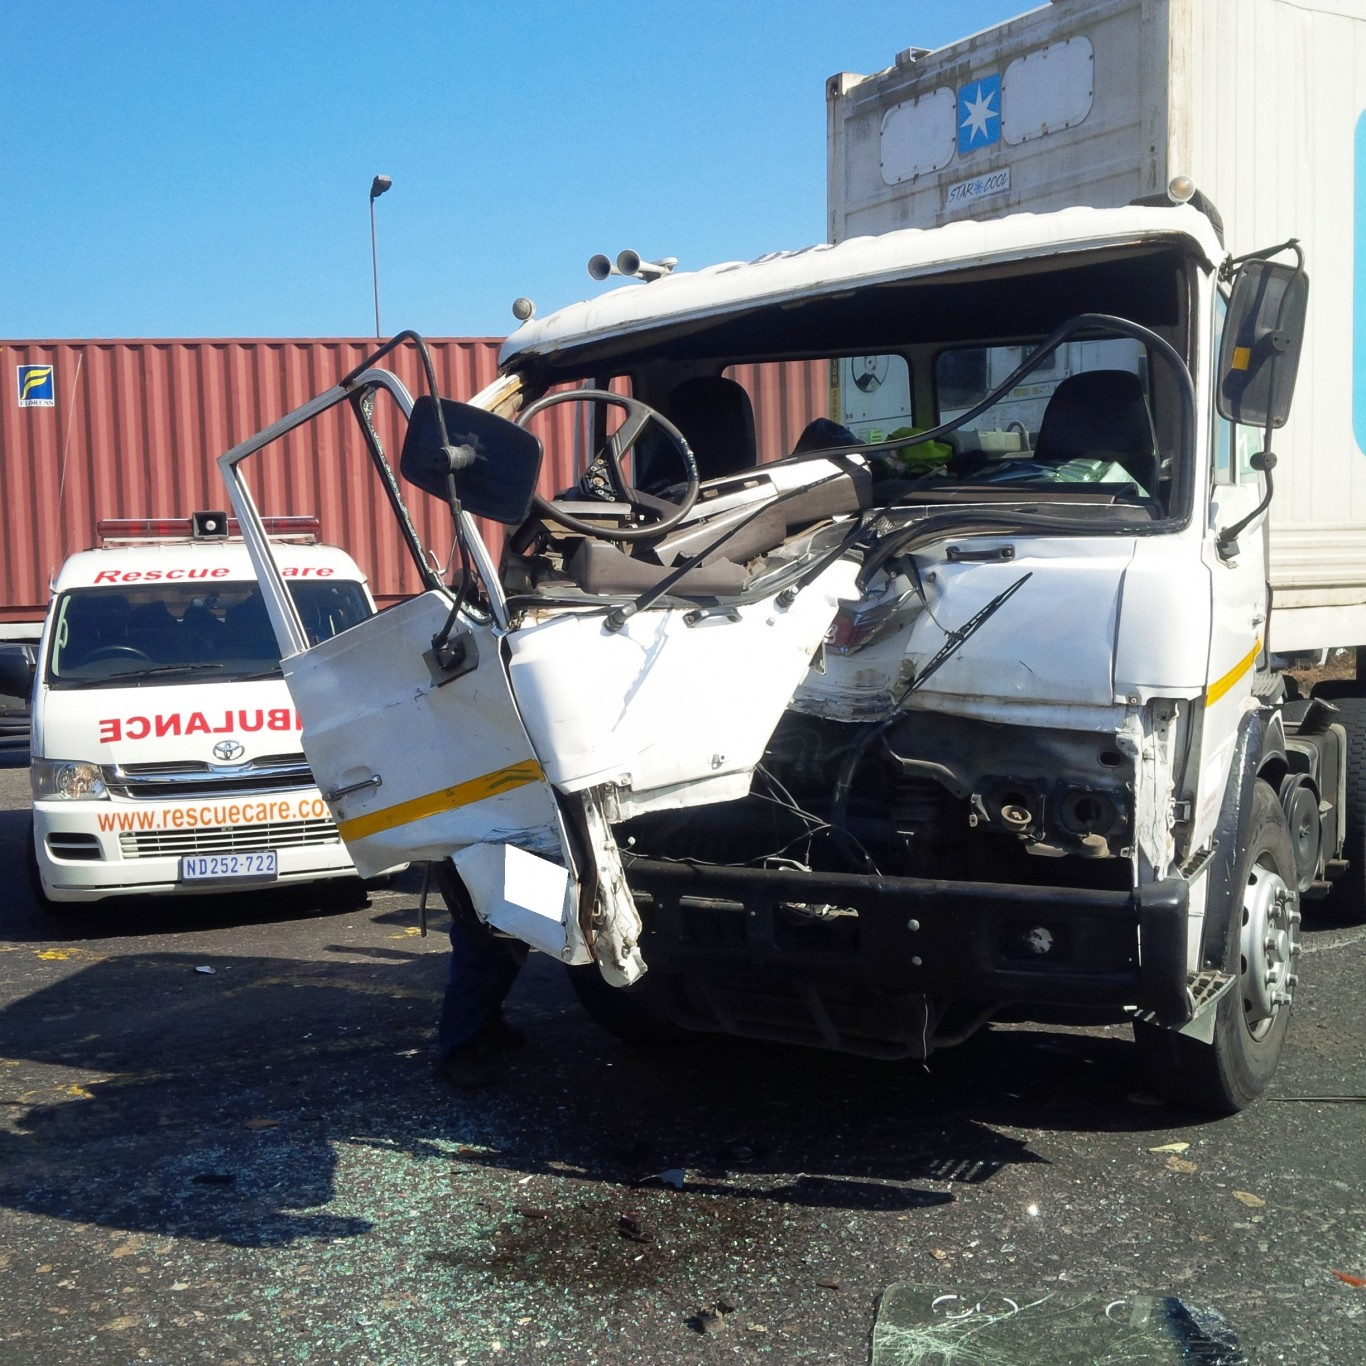 2 Injured after two trucks collided in Durban